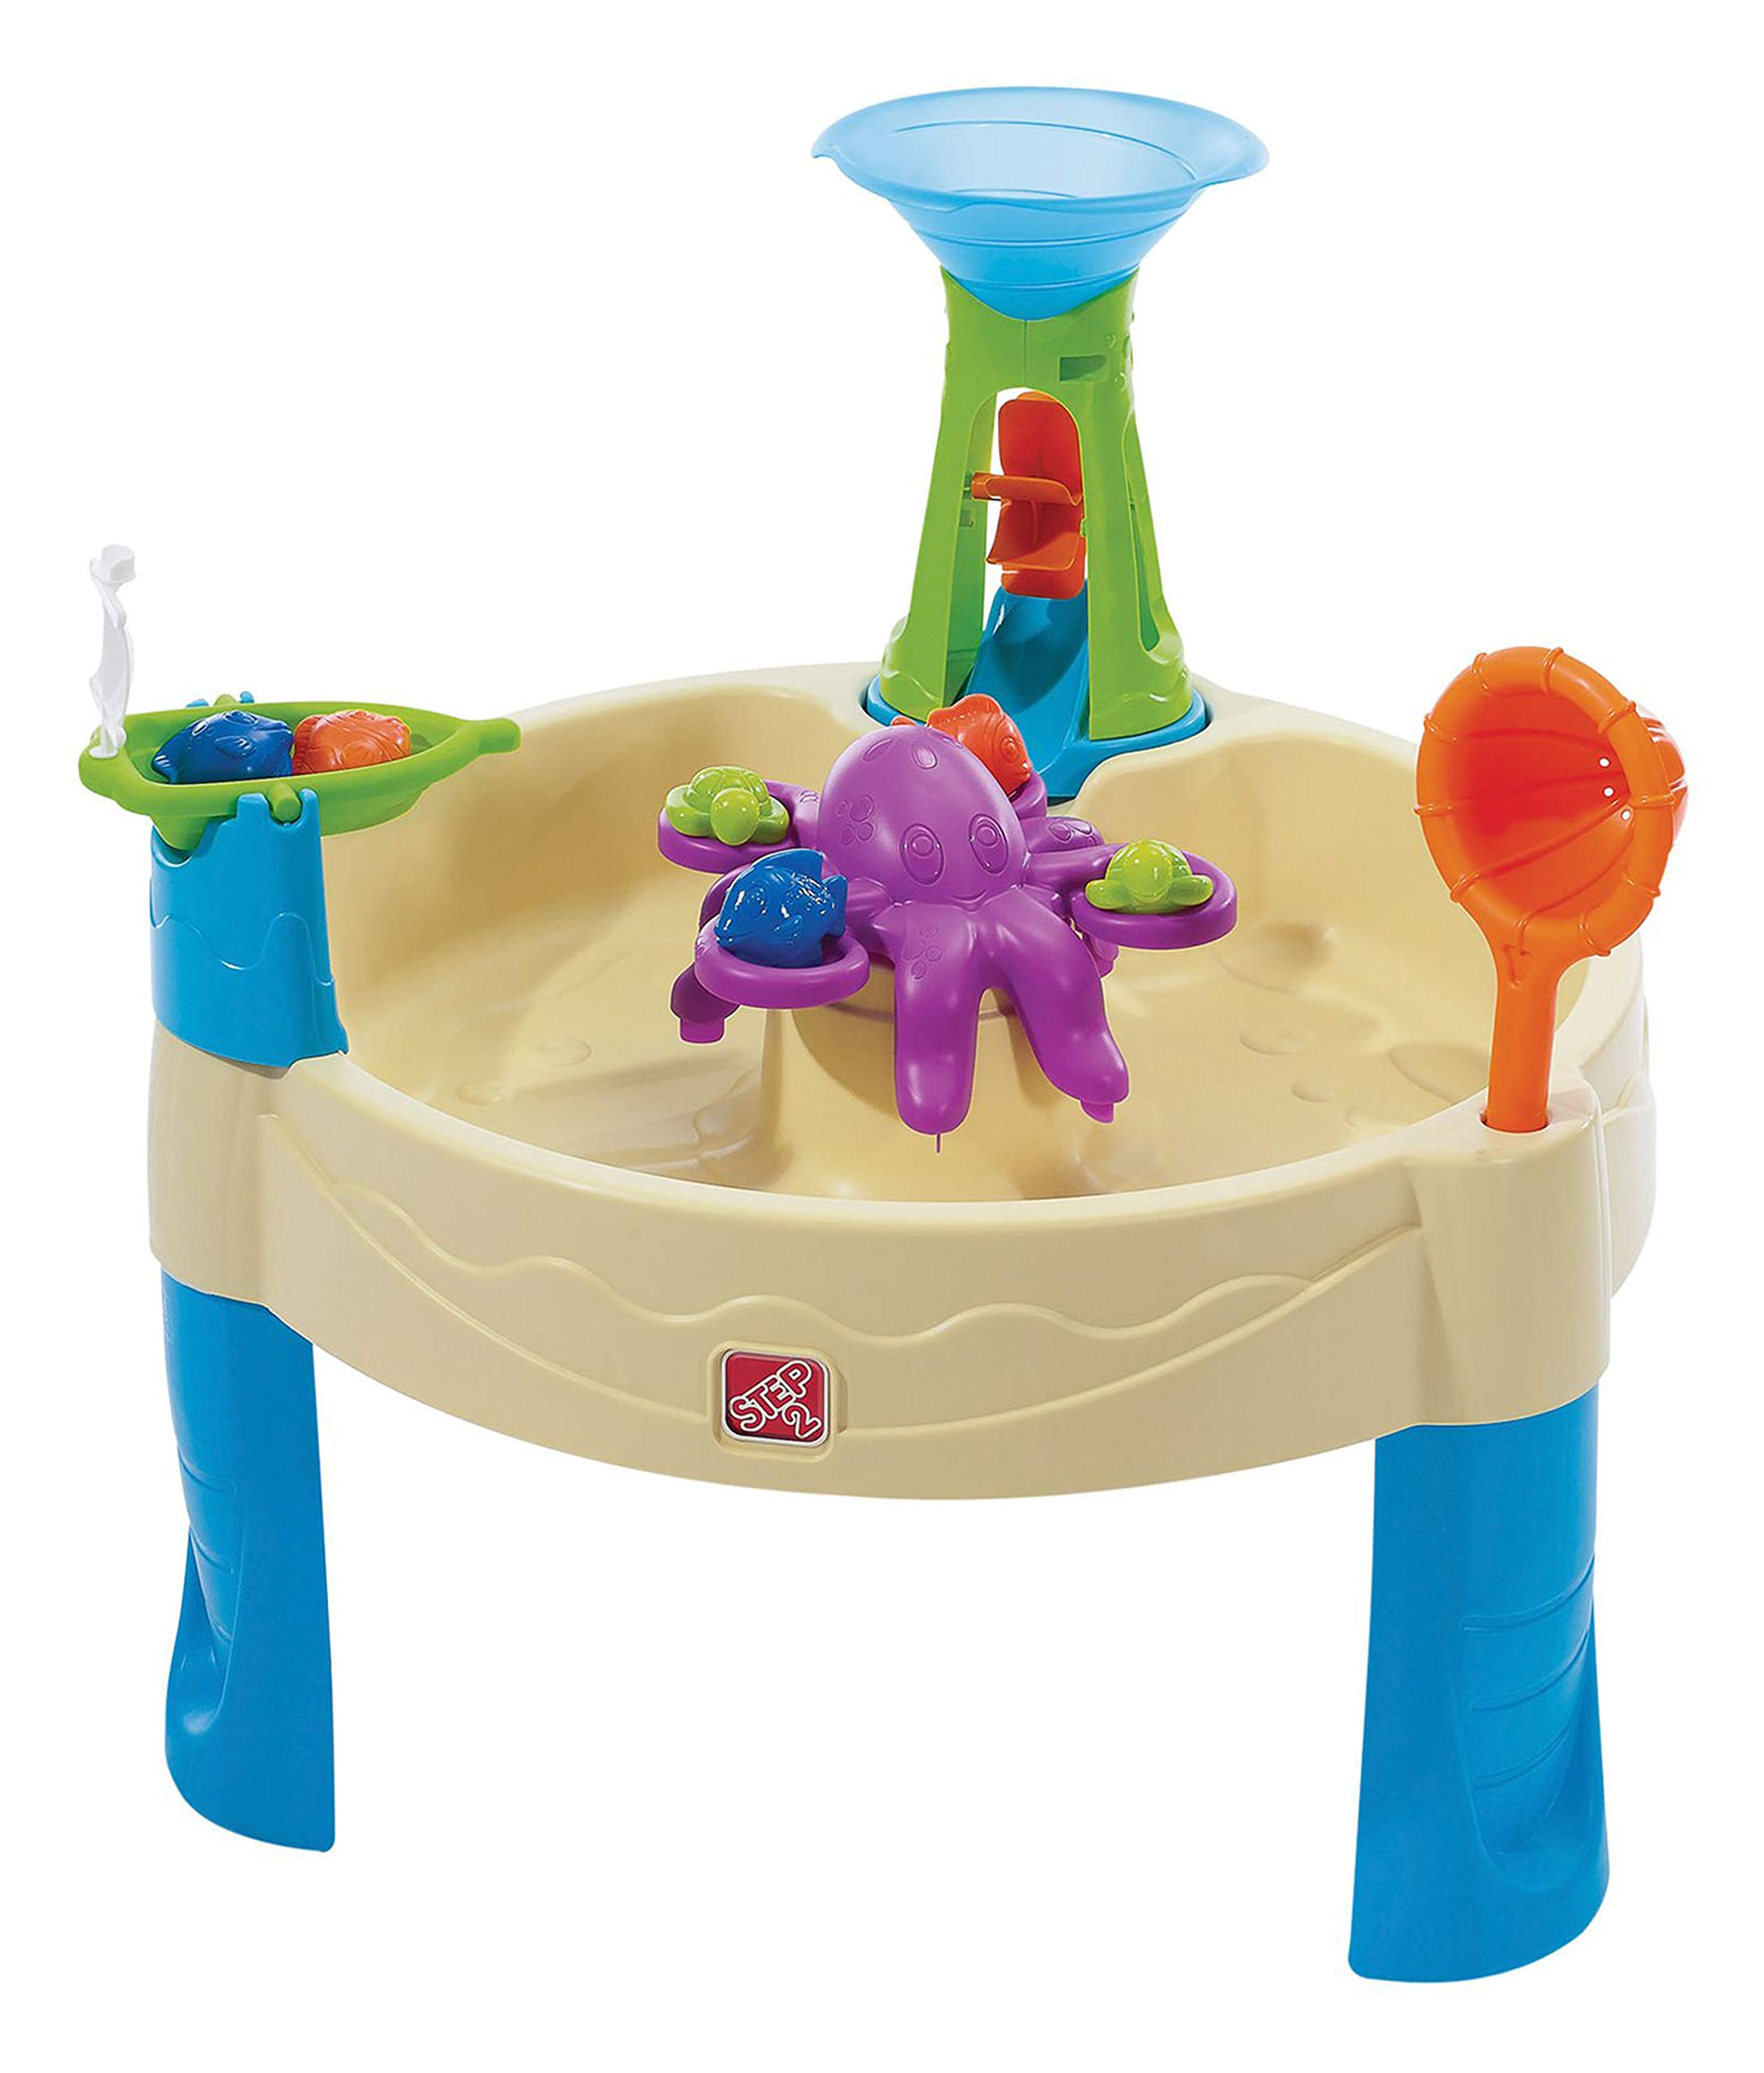 Step2 Wild Whirlpool Water Table, Basic Pack (840100)